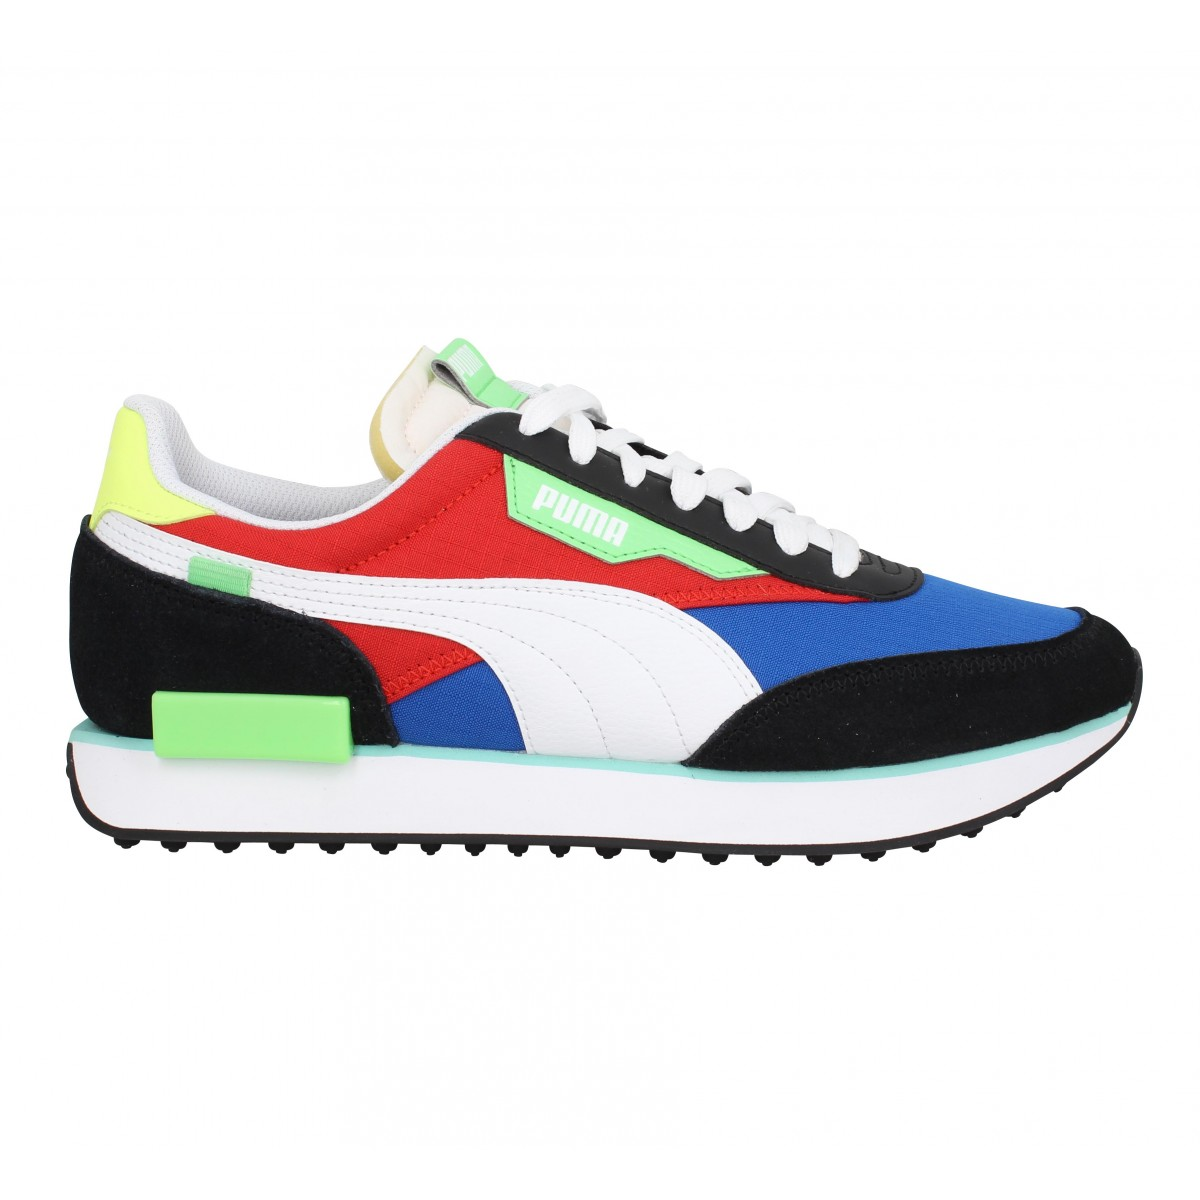 PUMA Future Rider Play On velours toile Homme Bleu Rouge